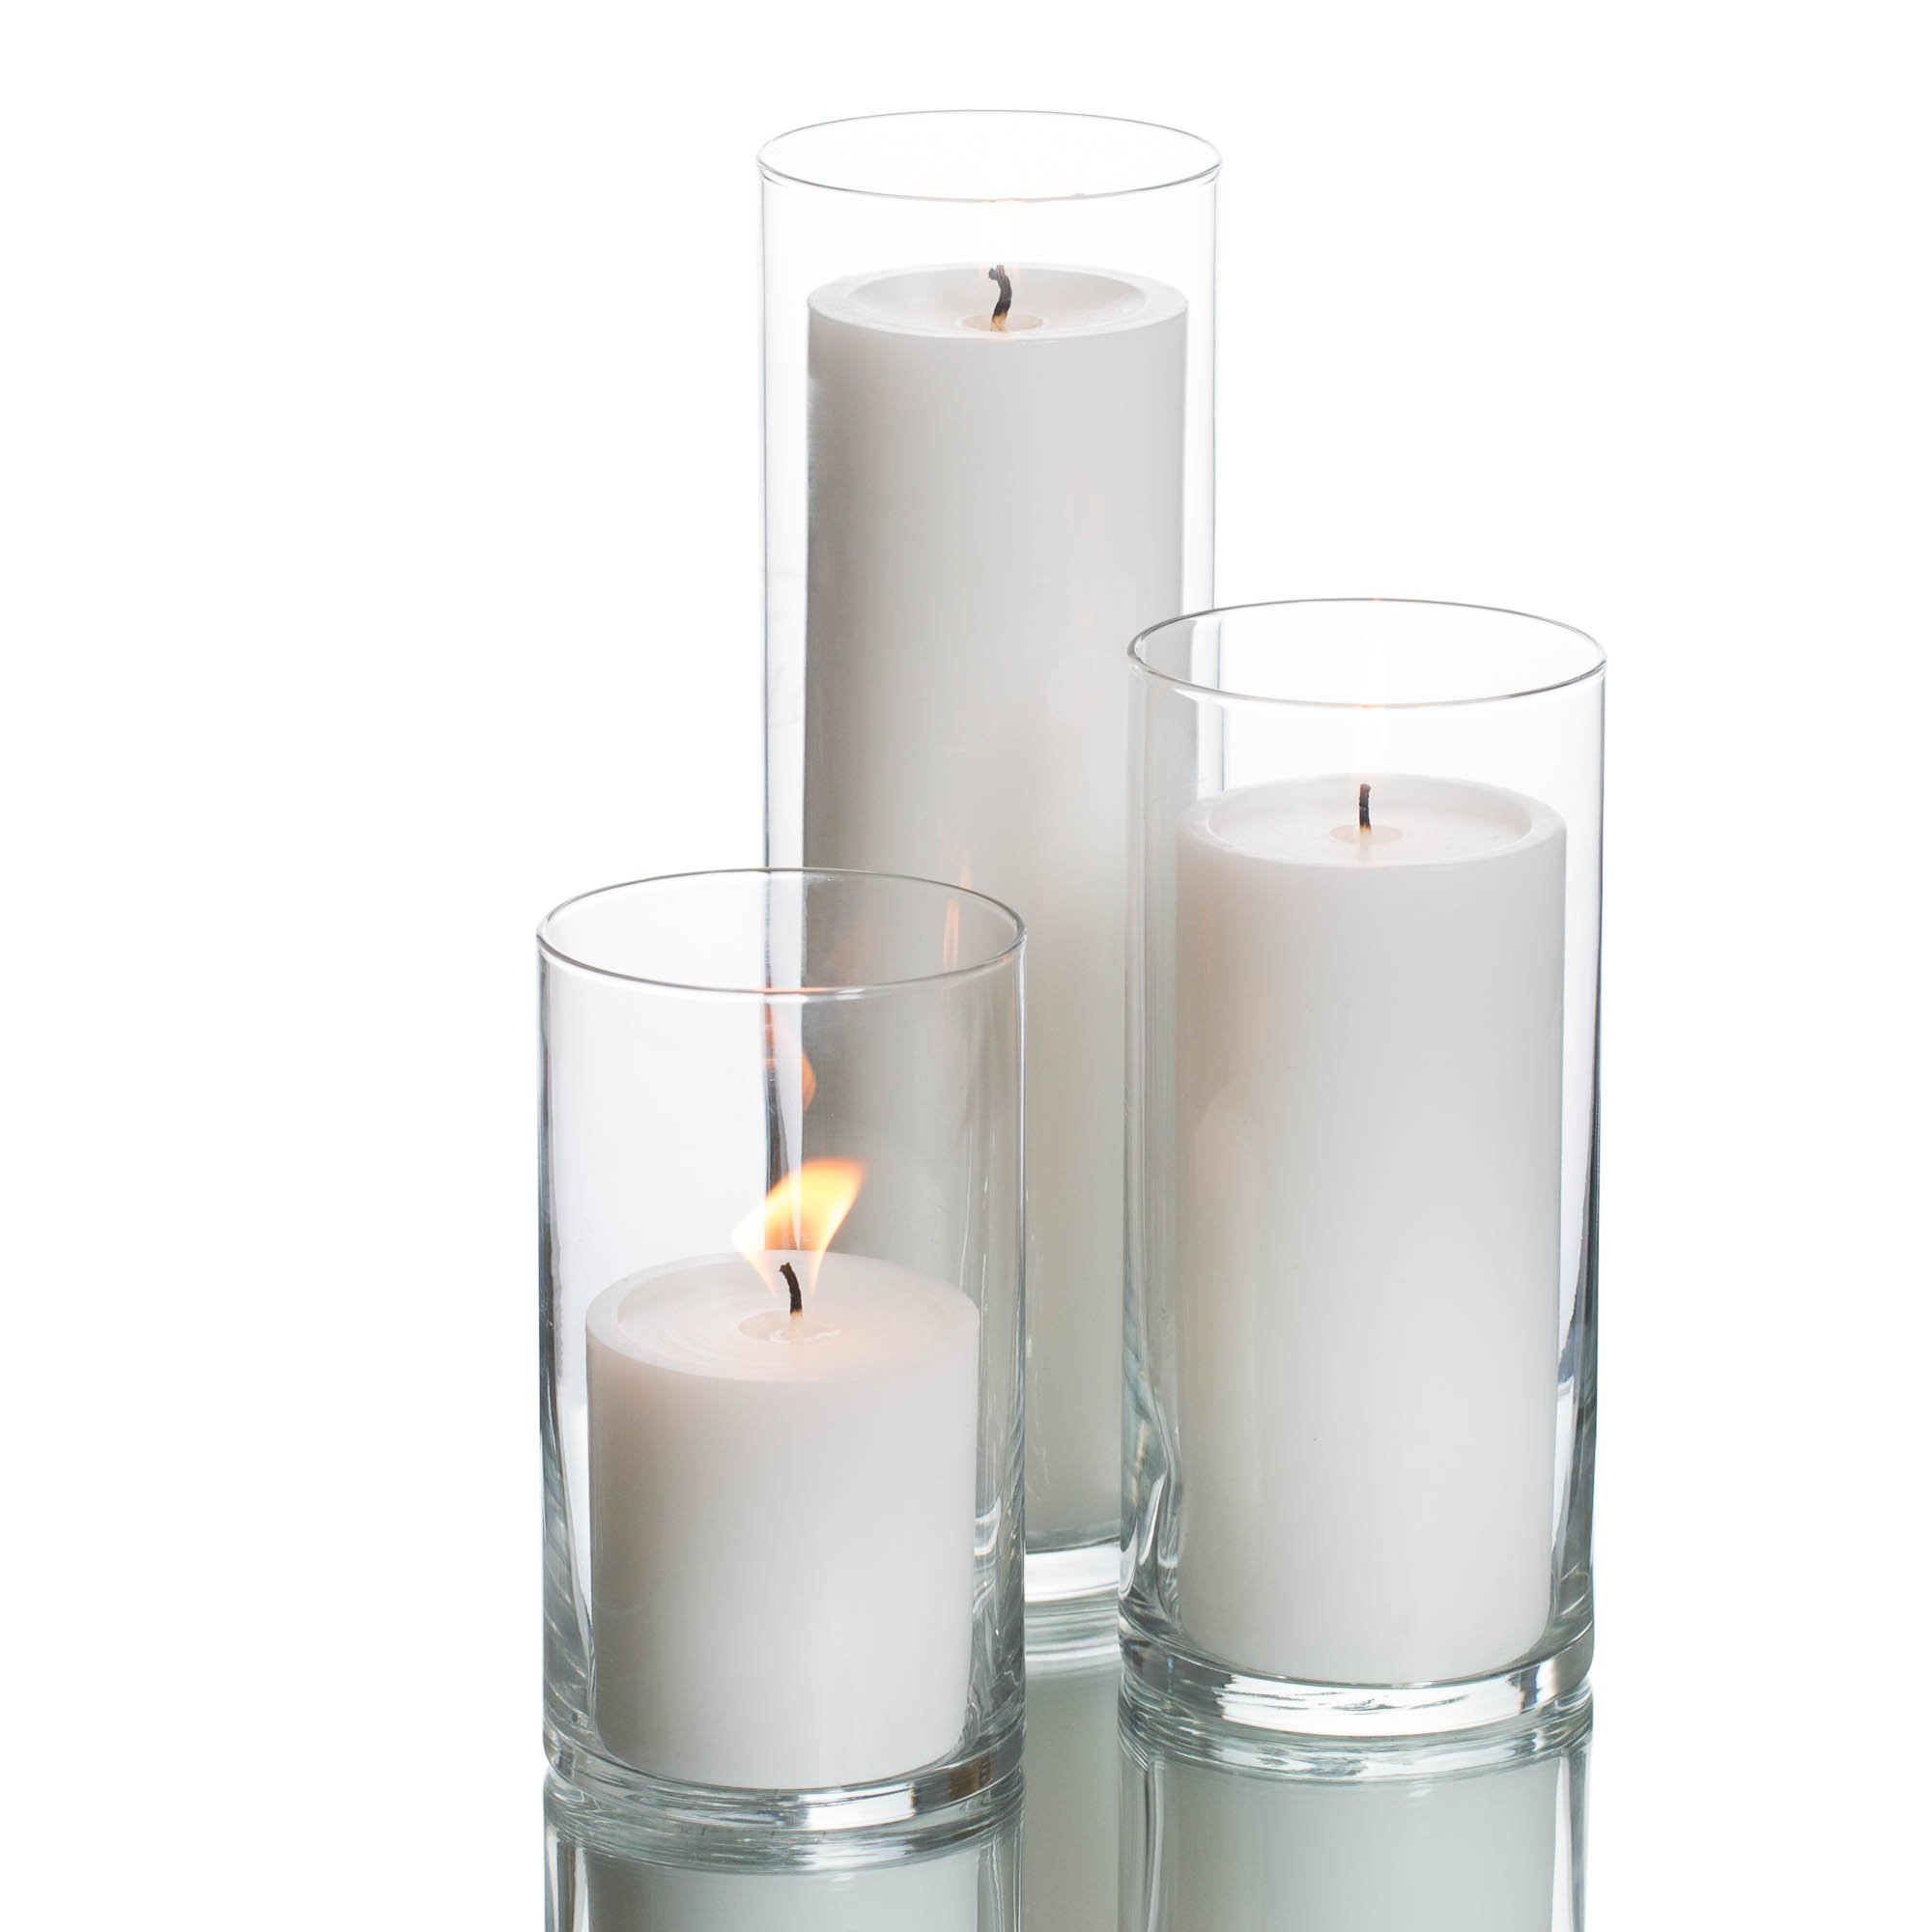 Richland Set of 3 Glass Eastland Cylinder Vases and 3 White Pillar Candles 3'' by Richland